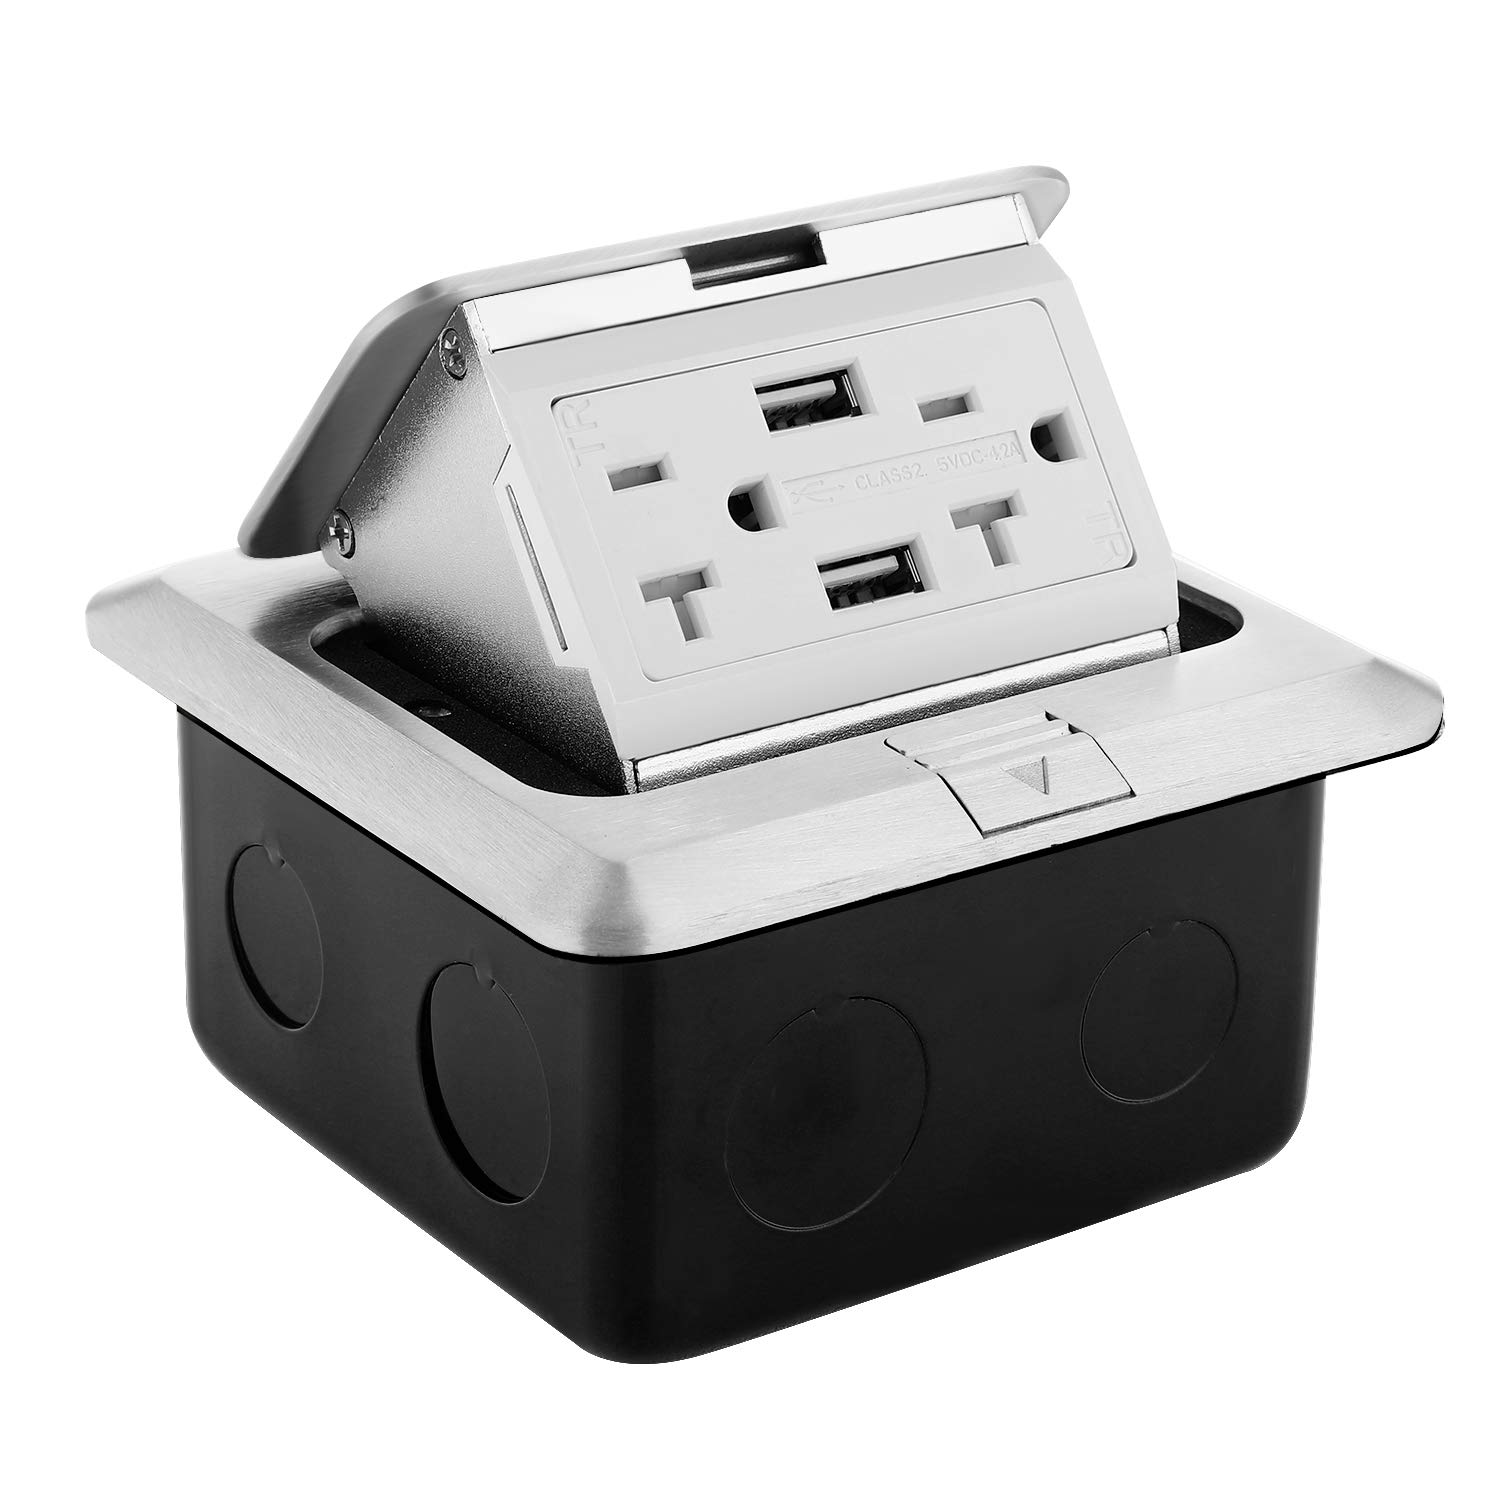 WEBANG Pop Up Floor Outlet Covers box with 20 Amp Stainless Steel USB TR Recaptacle outlet (Silver)